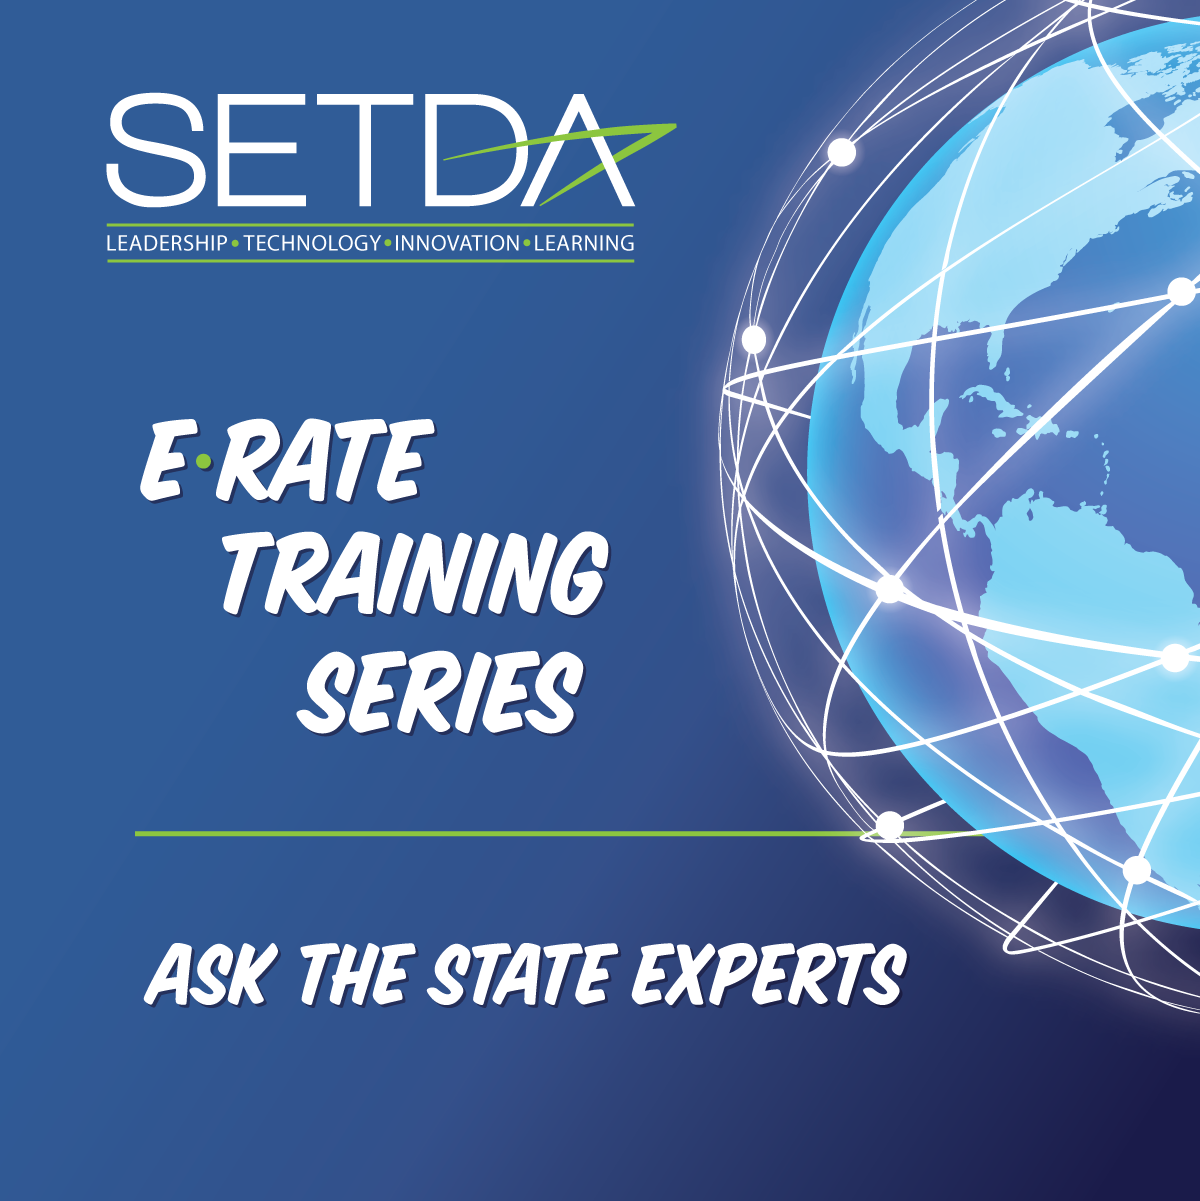 e-rate training series